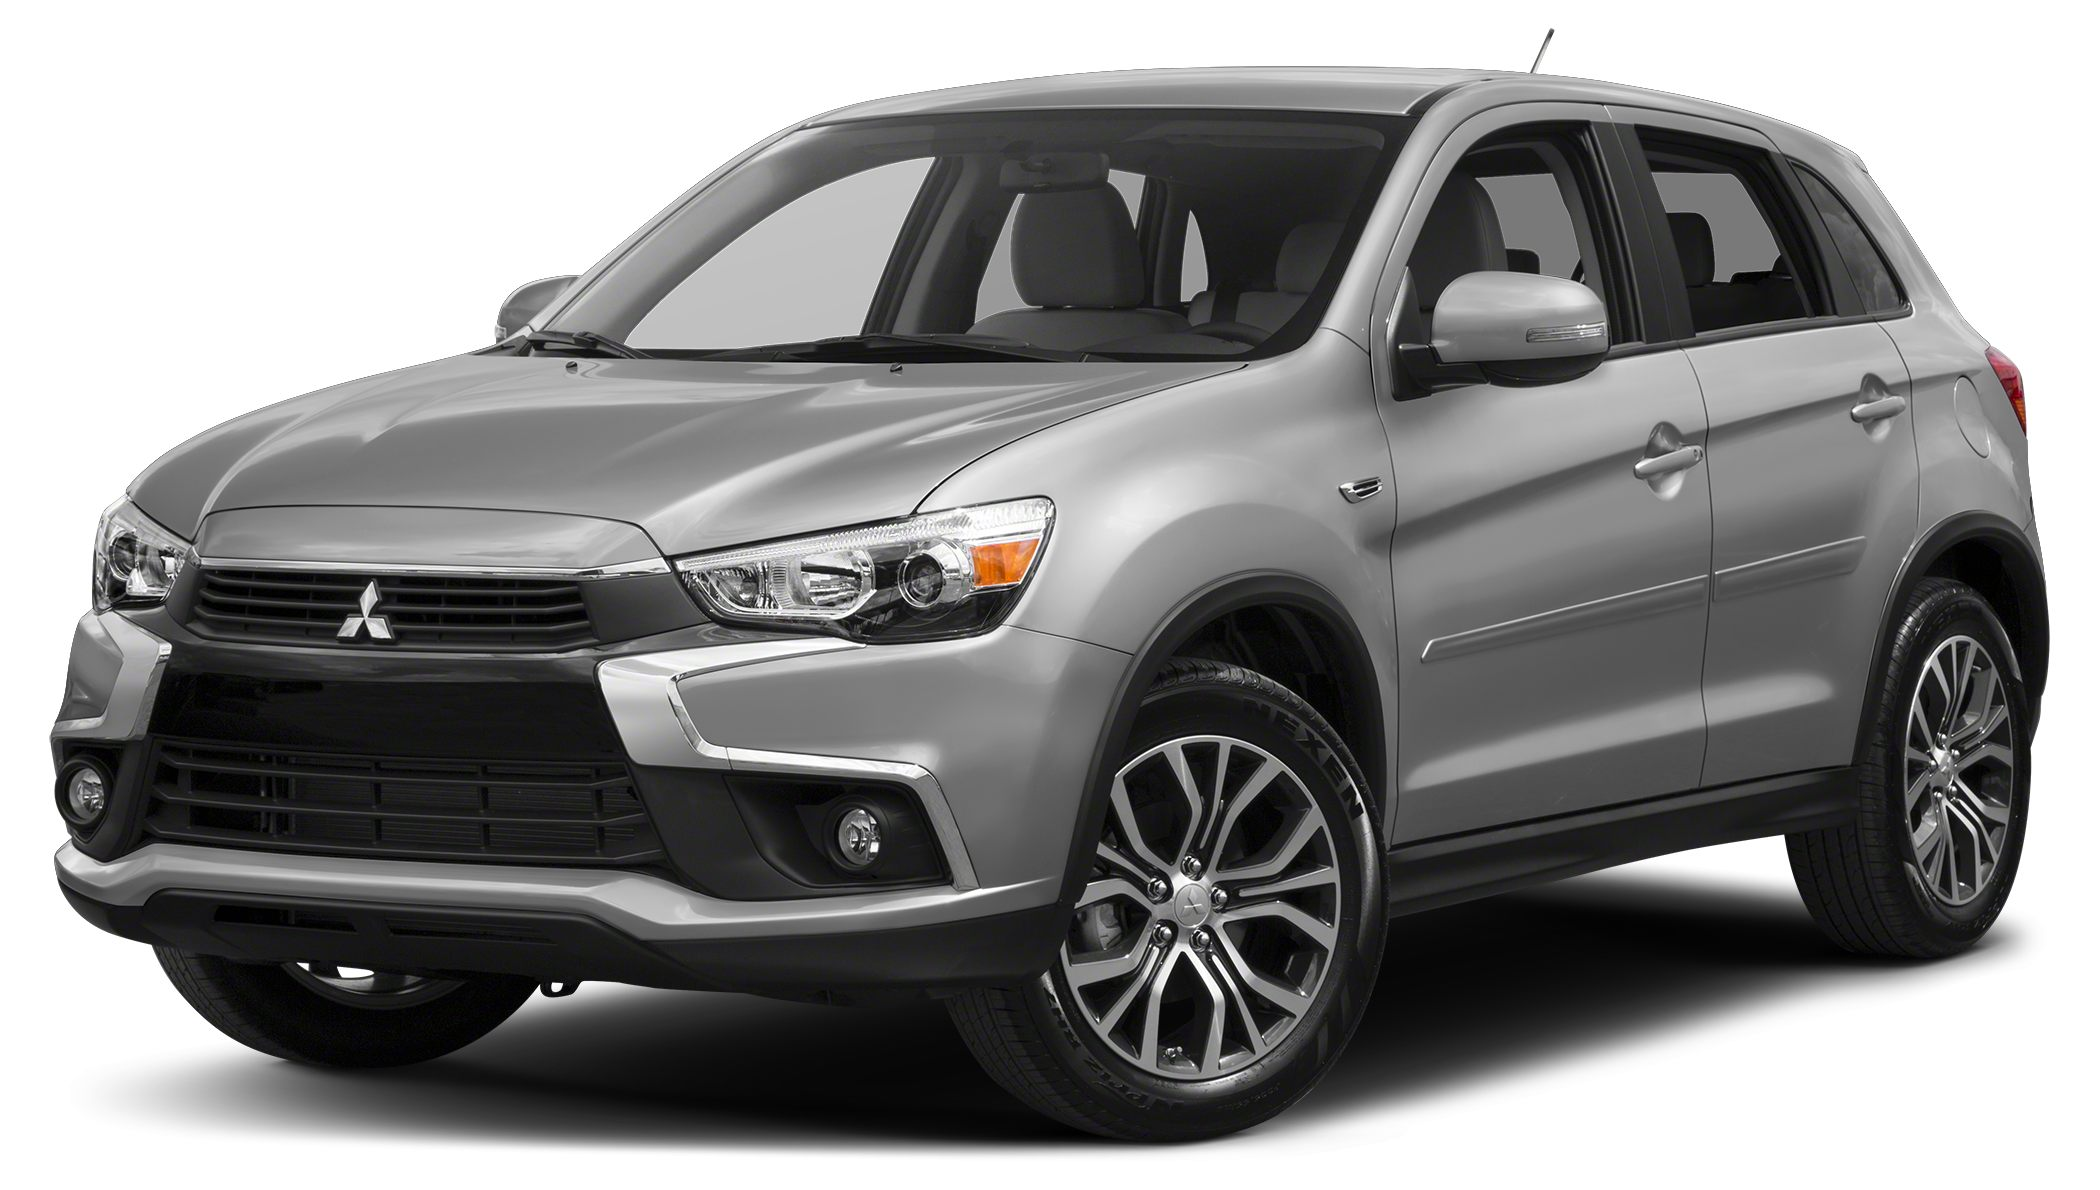 2016 Mitsubishi Outlander Sport 20 ES New Price Recent Arrival Odometer is 1440 miles below mar